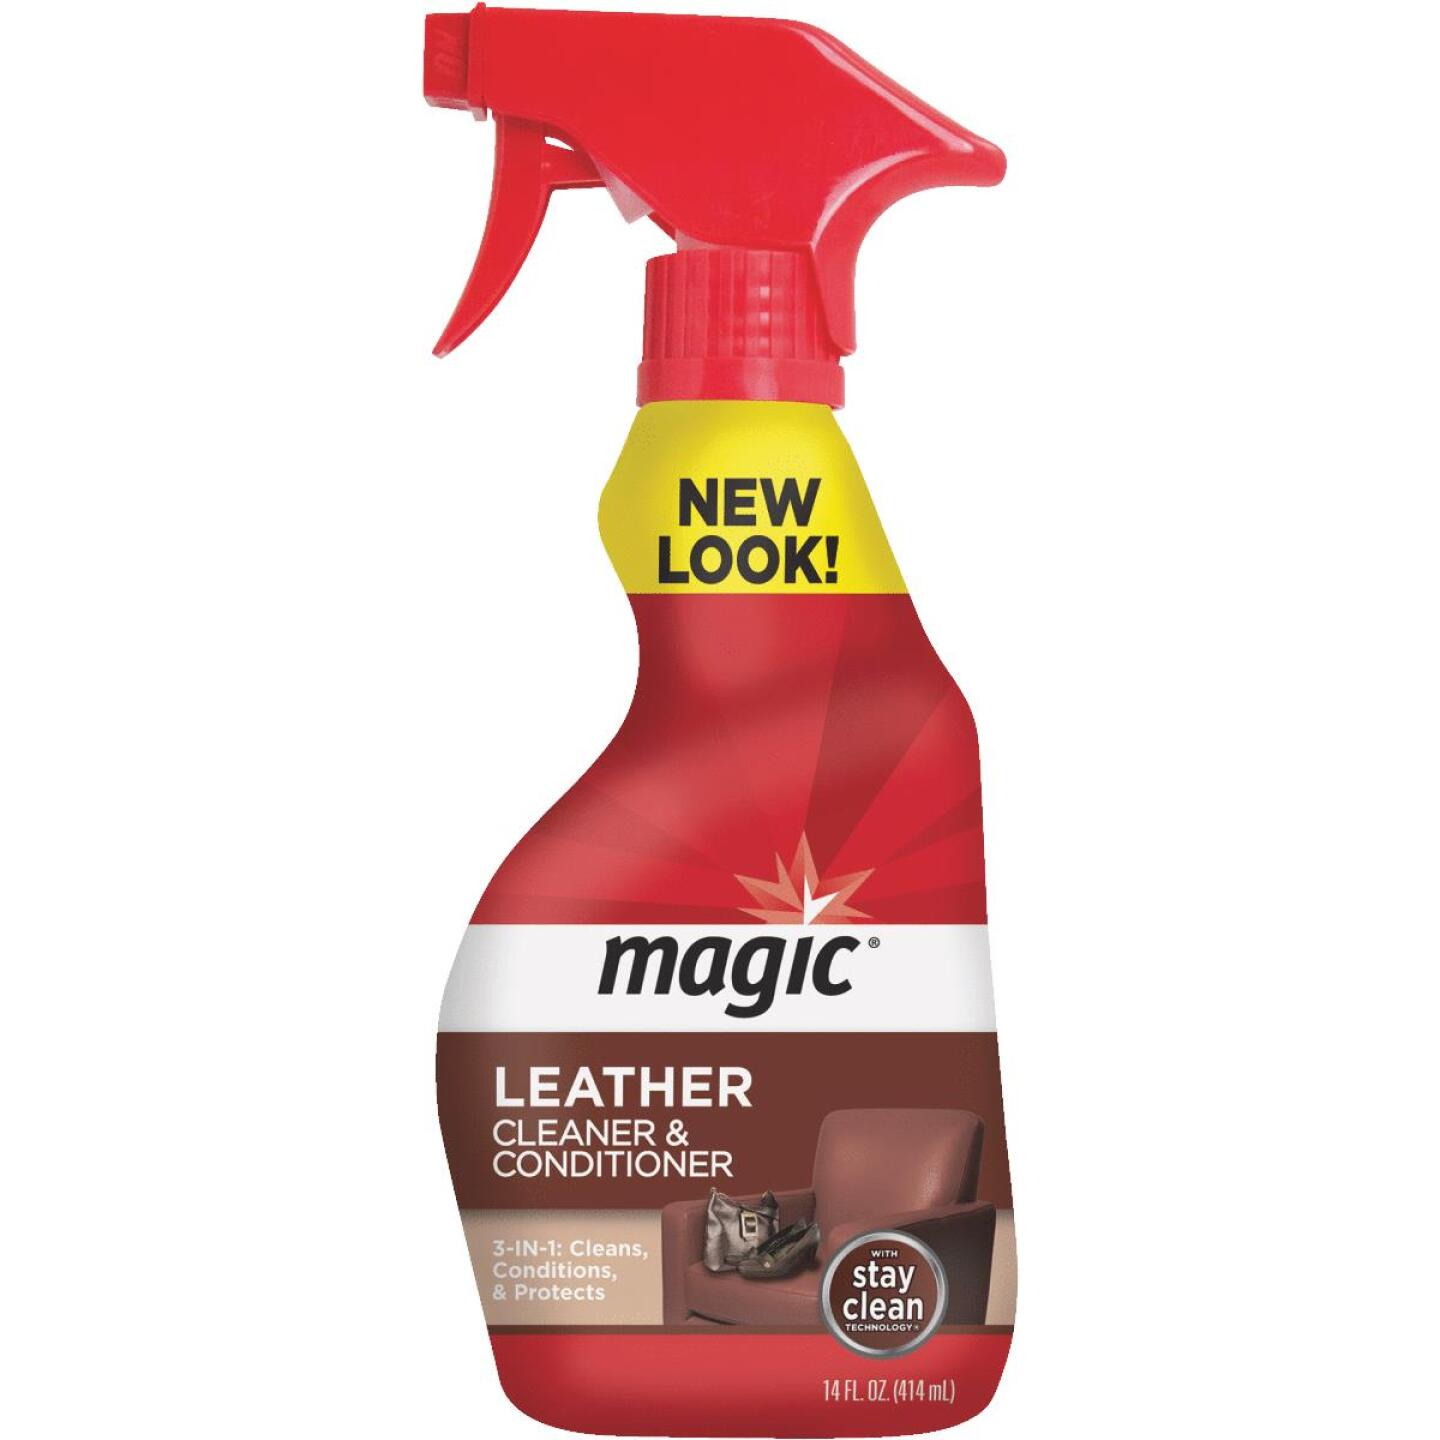 Magic 14 Oz. Trigger Spray Leather Cleaner & Conditioner Image 1